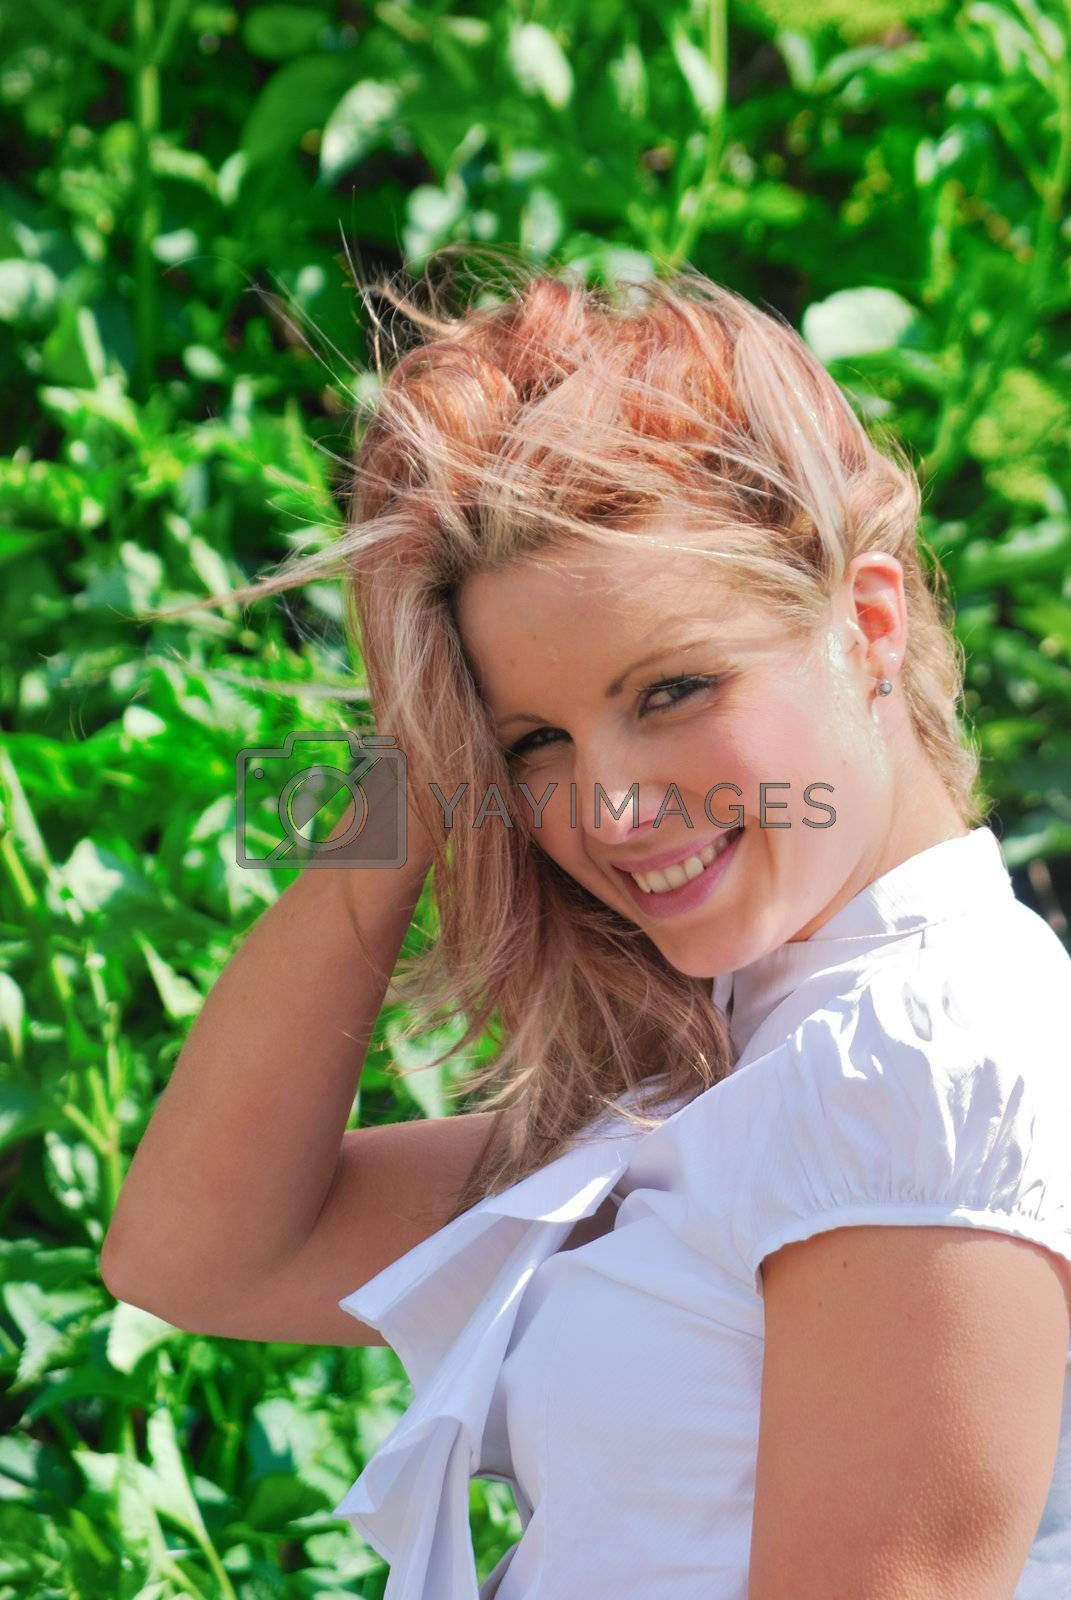 Pretty girl outdoors with leafy background